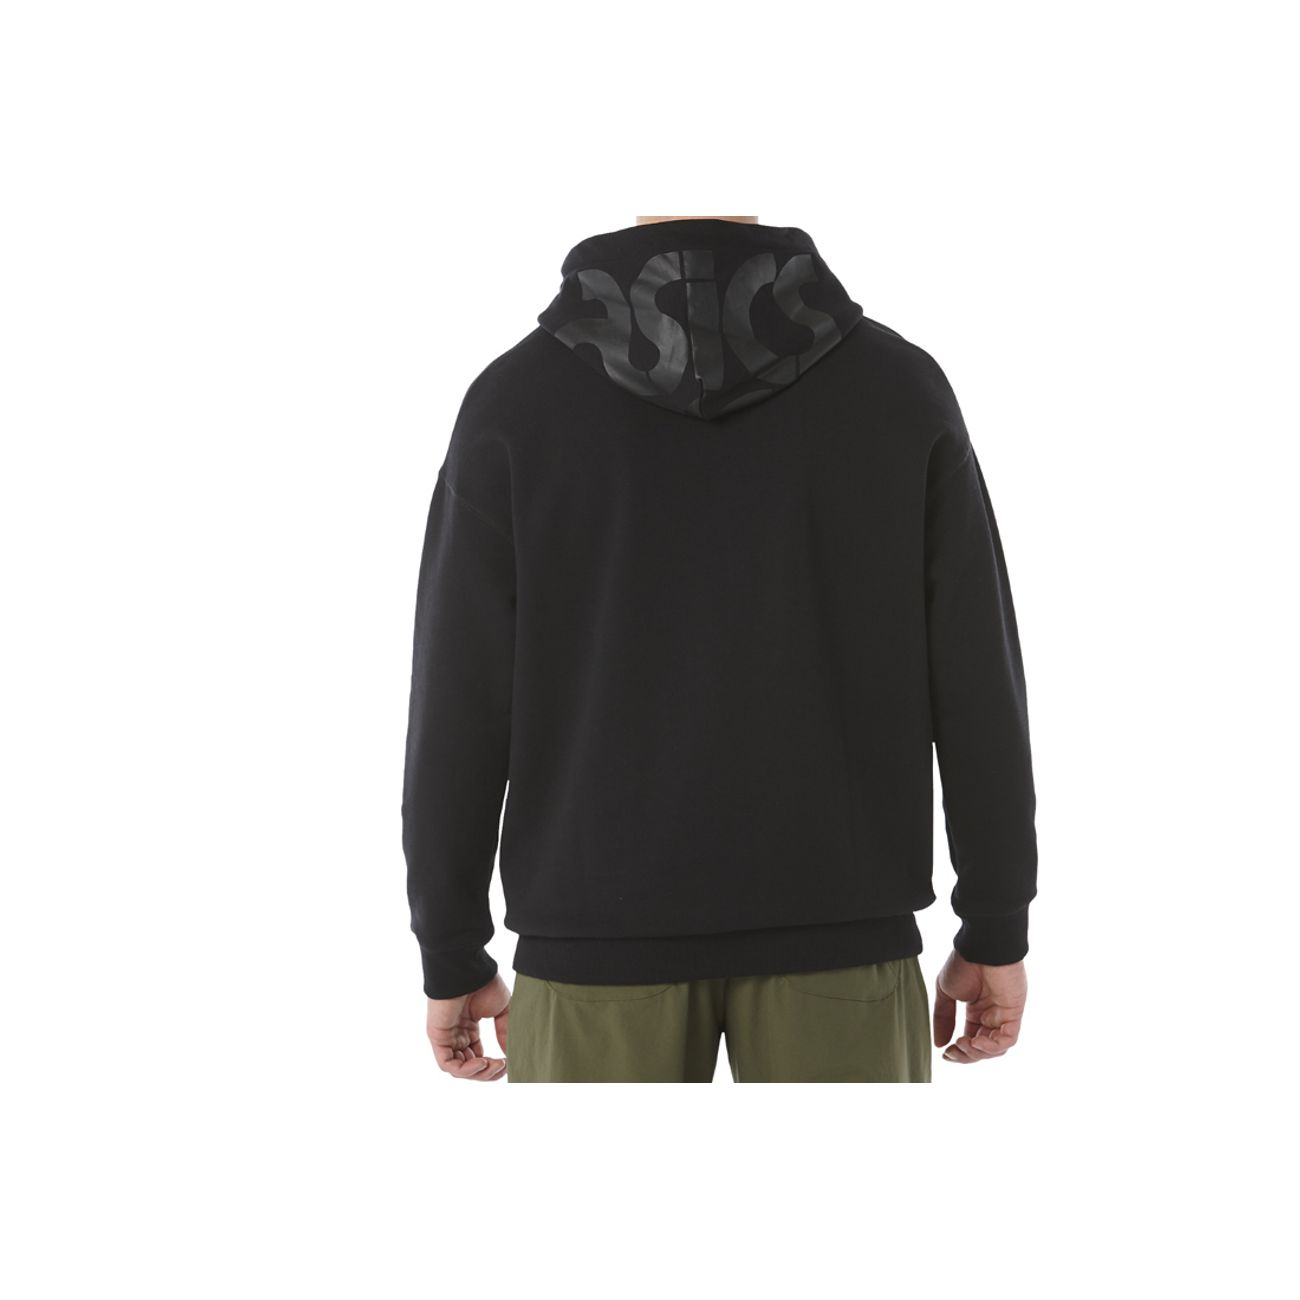 Mode- Lifestyle homme ASICS Asics BL Sweat PO Hoodie 2191A018-001